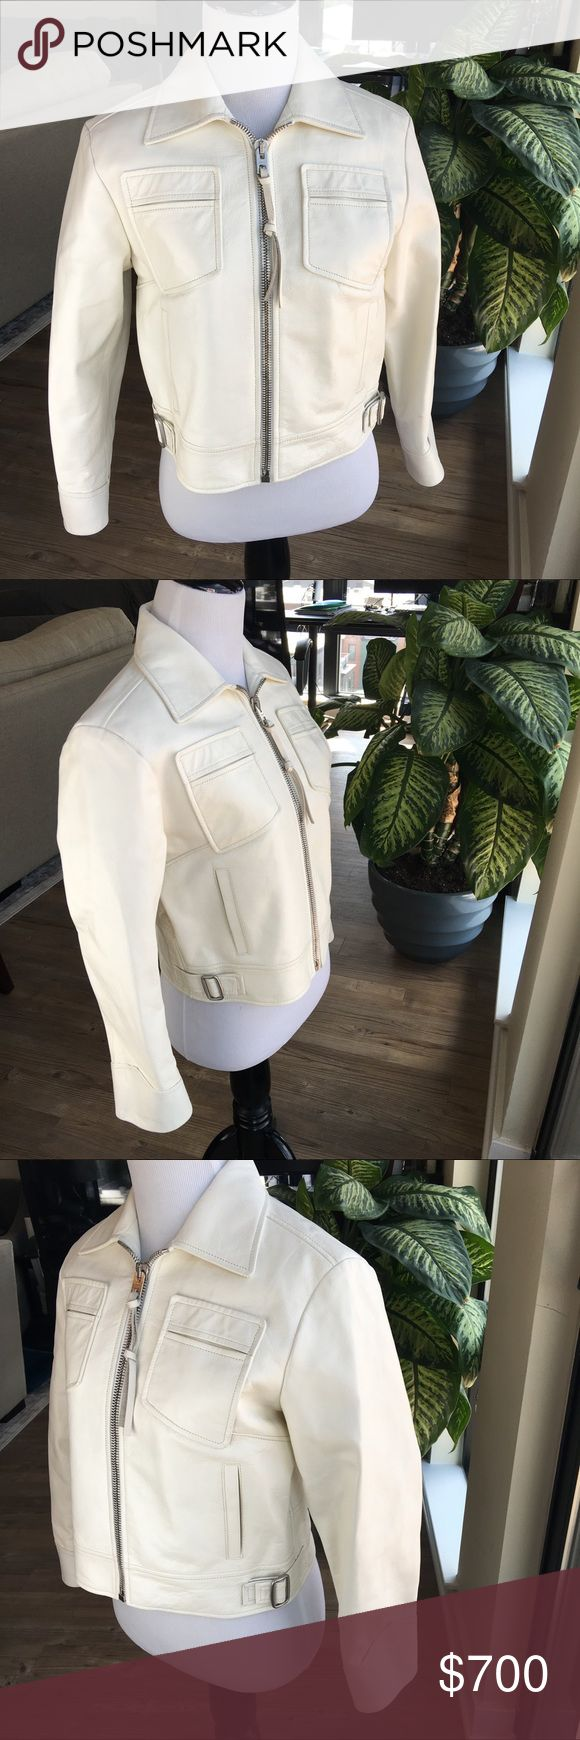 """Coach Cropped Mod Jacket Leather Authentic & New Women's COACH Cropped Mod Jacket **As seen in the New York Post Style Section!"""" Retail Price $1,595  Size 8 some marks/flaws - see photos but the coat is new with tags 100% Calf Leather Made in Italy Off White/Cream Color Long Sleeve Crop Length Non-smoking home  Approximate Measurements: Shoulders: 17"""" Sleeve Length 20"""" Jacket Length back of neck to bottom: 18"""" Pit to Pit 18"""" **FYI I am a 36D cup and this jacket will not zip up on me - it…"""